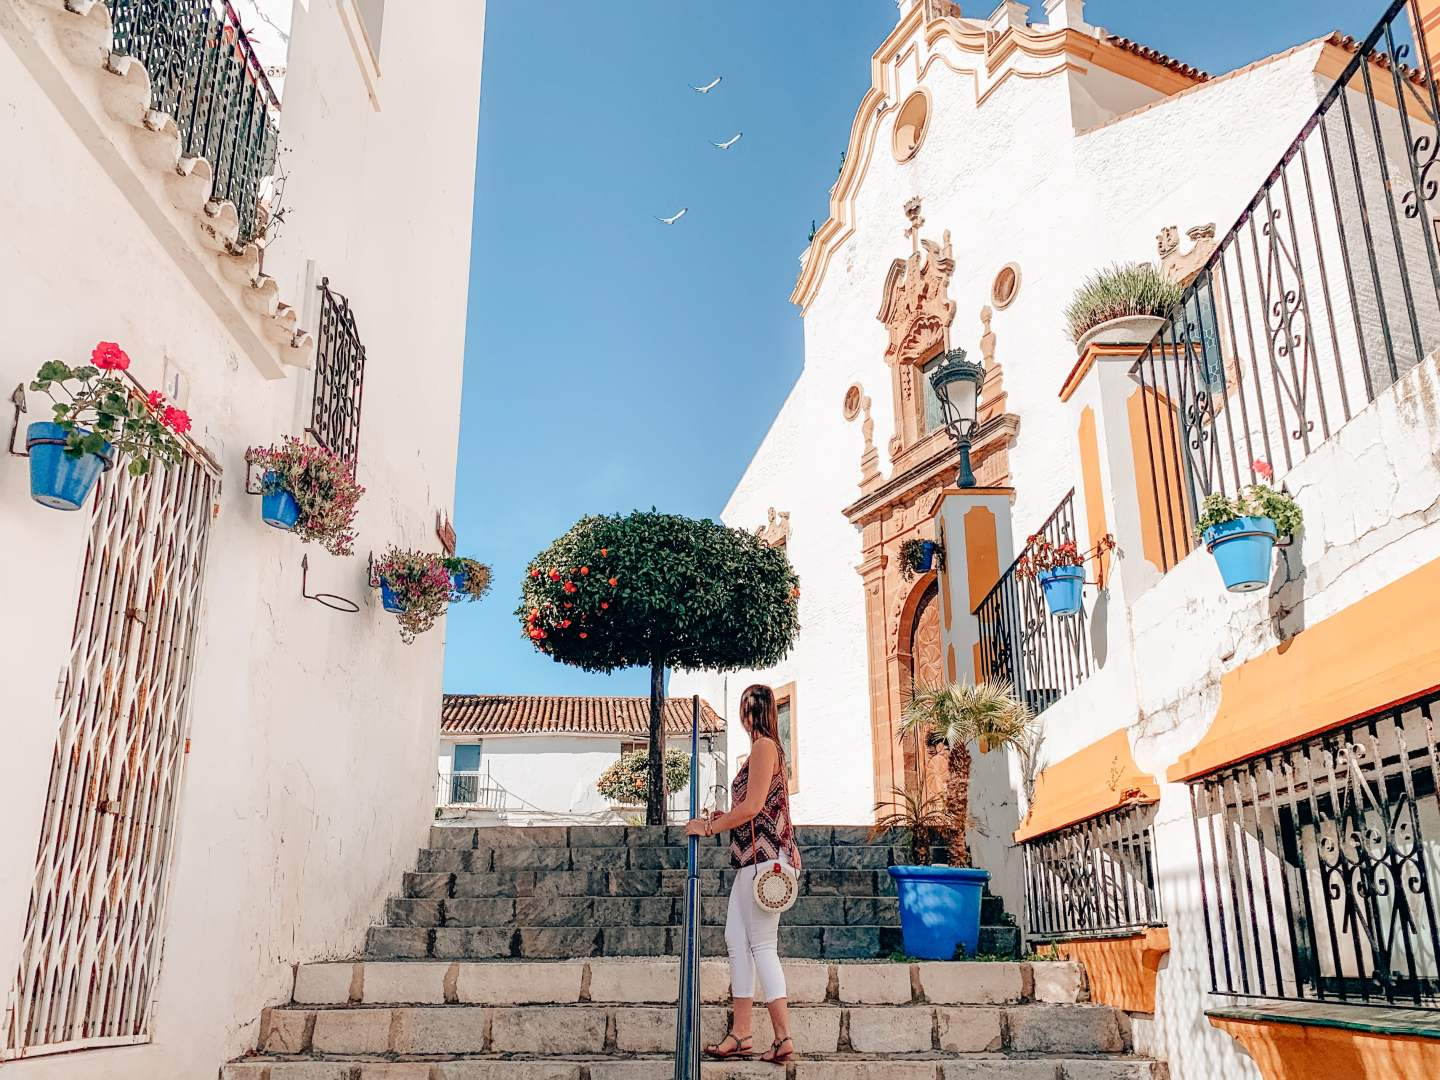 Estepona instagram alleys travel blog